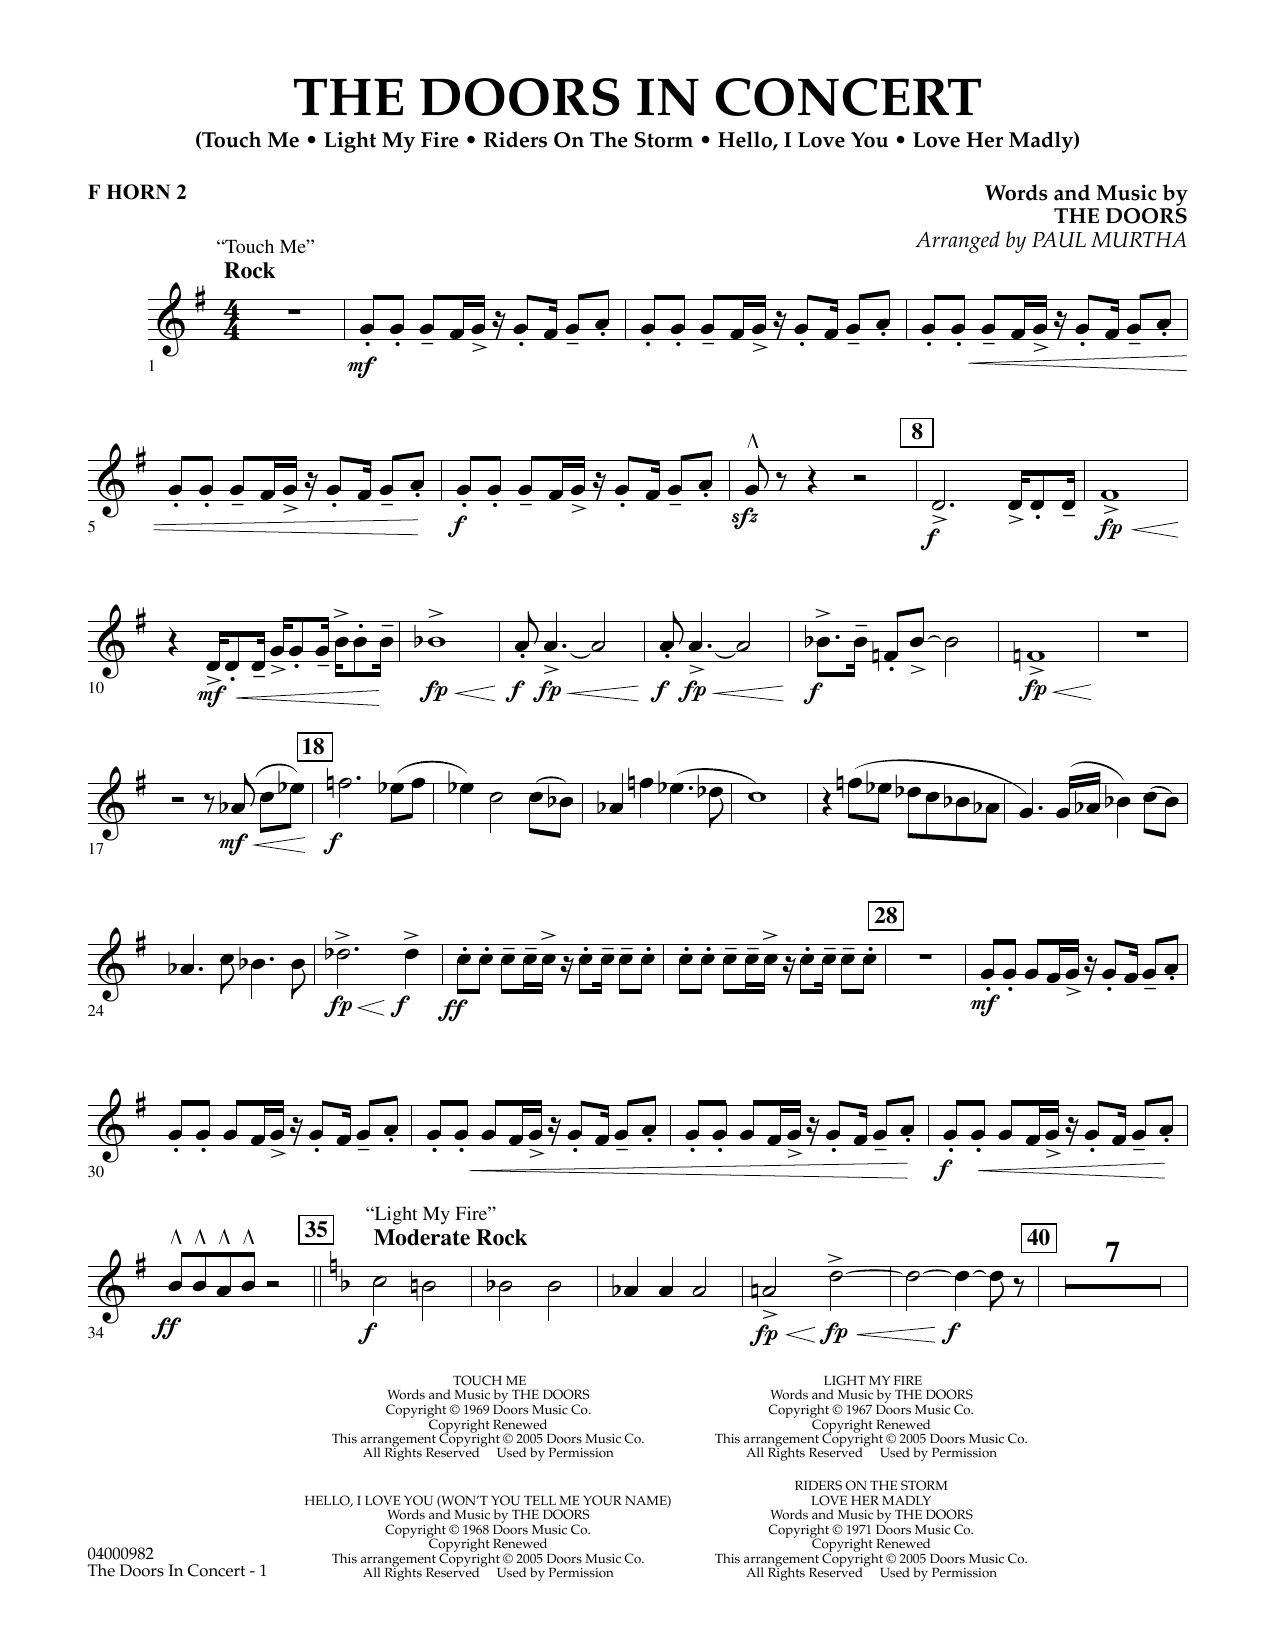 The Doors The Doors in Concert (arr. Paul Murtha) - F Horn 2 sheet music notes and chords. Download Printable PDF.